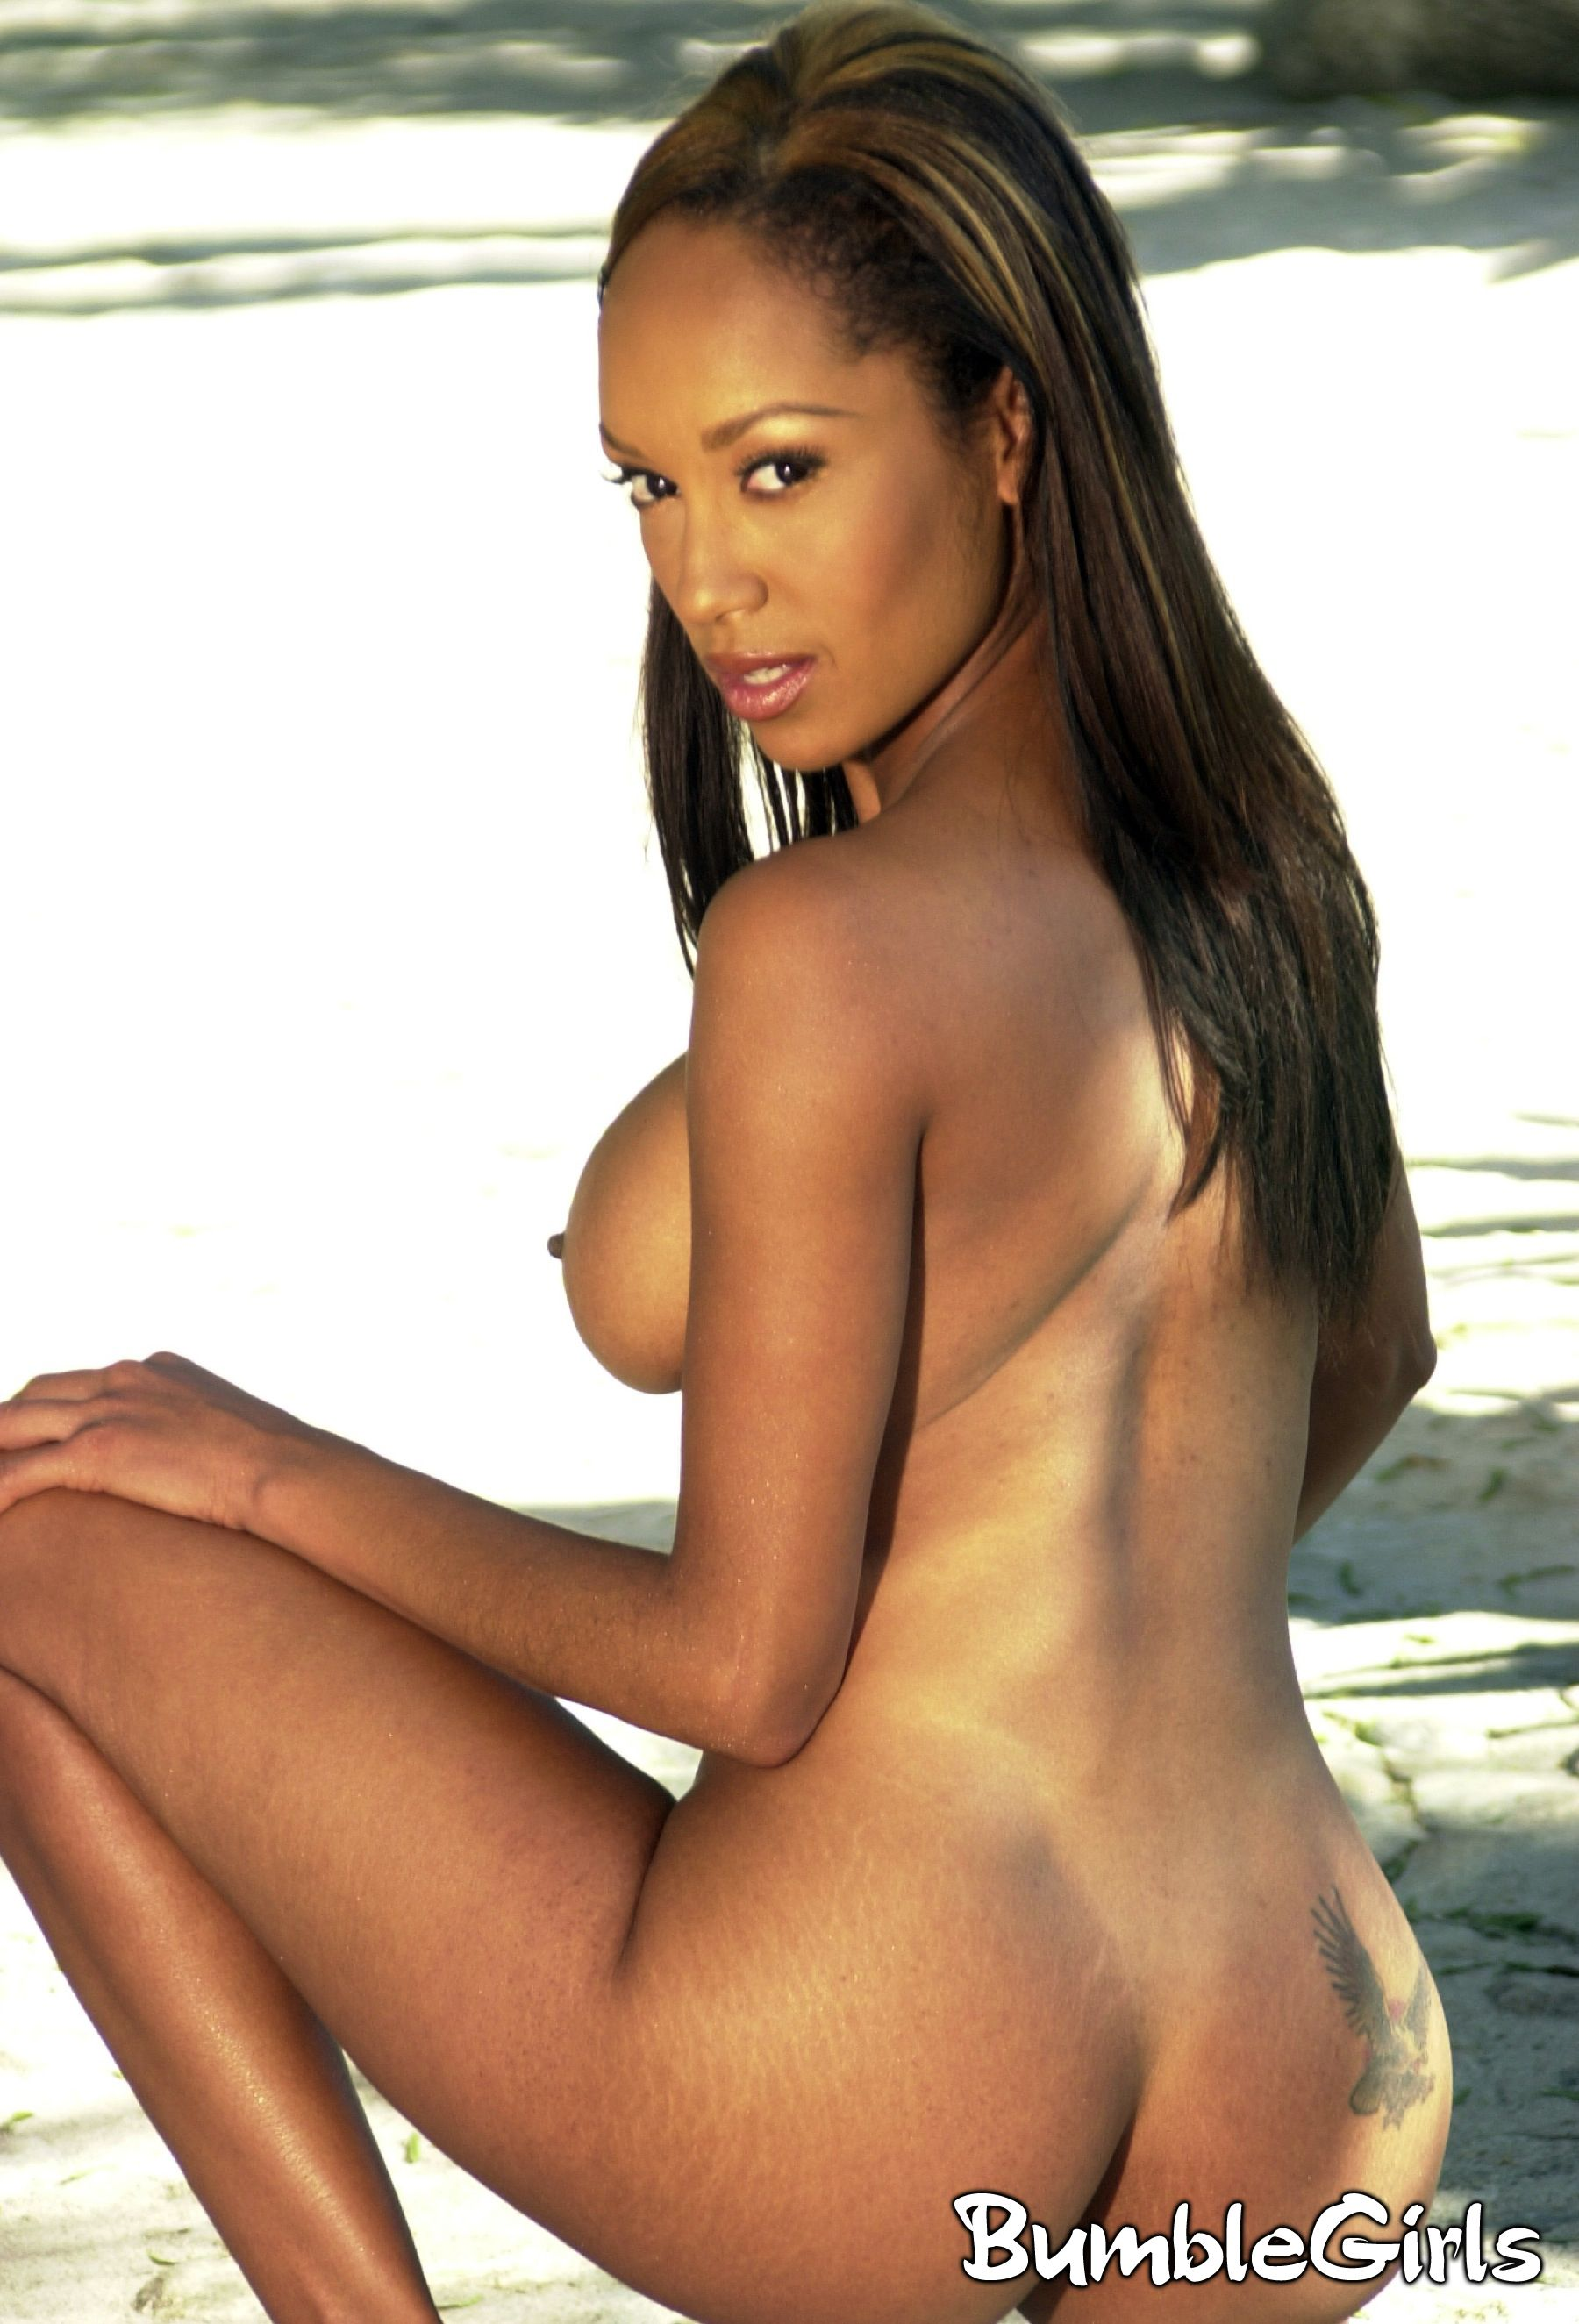 Nude model Black women